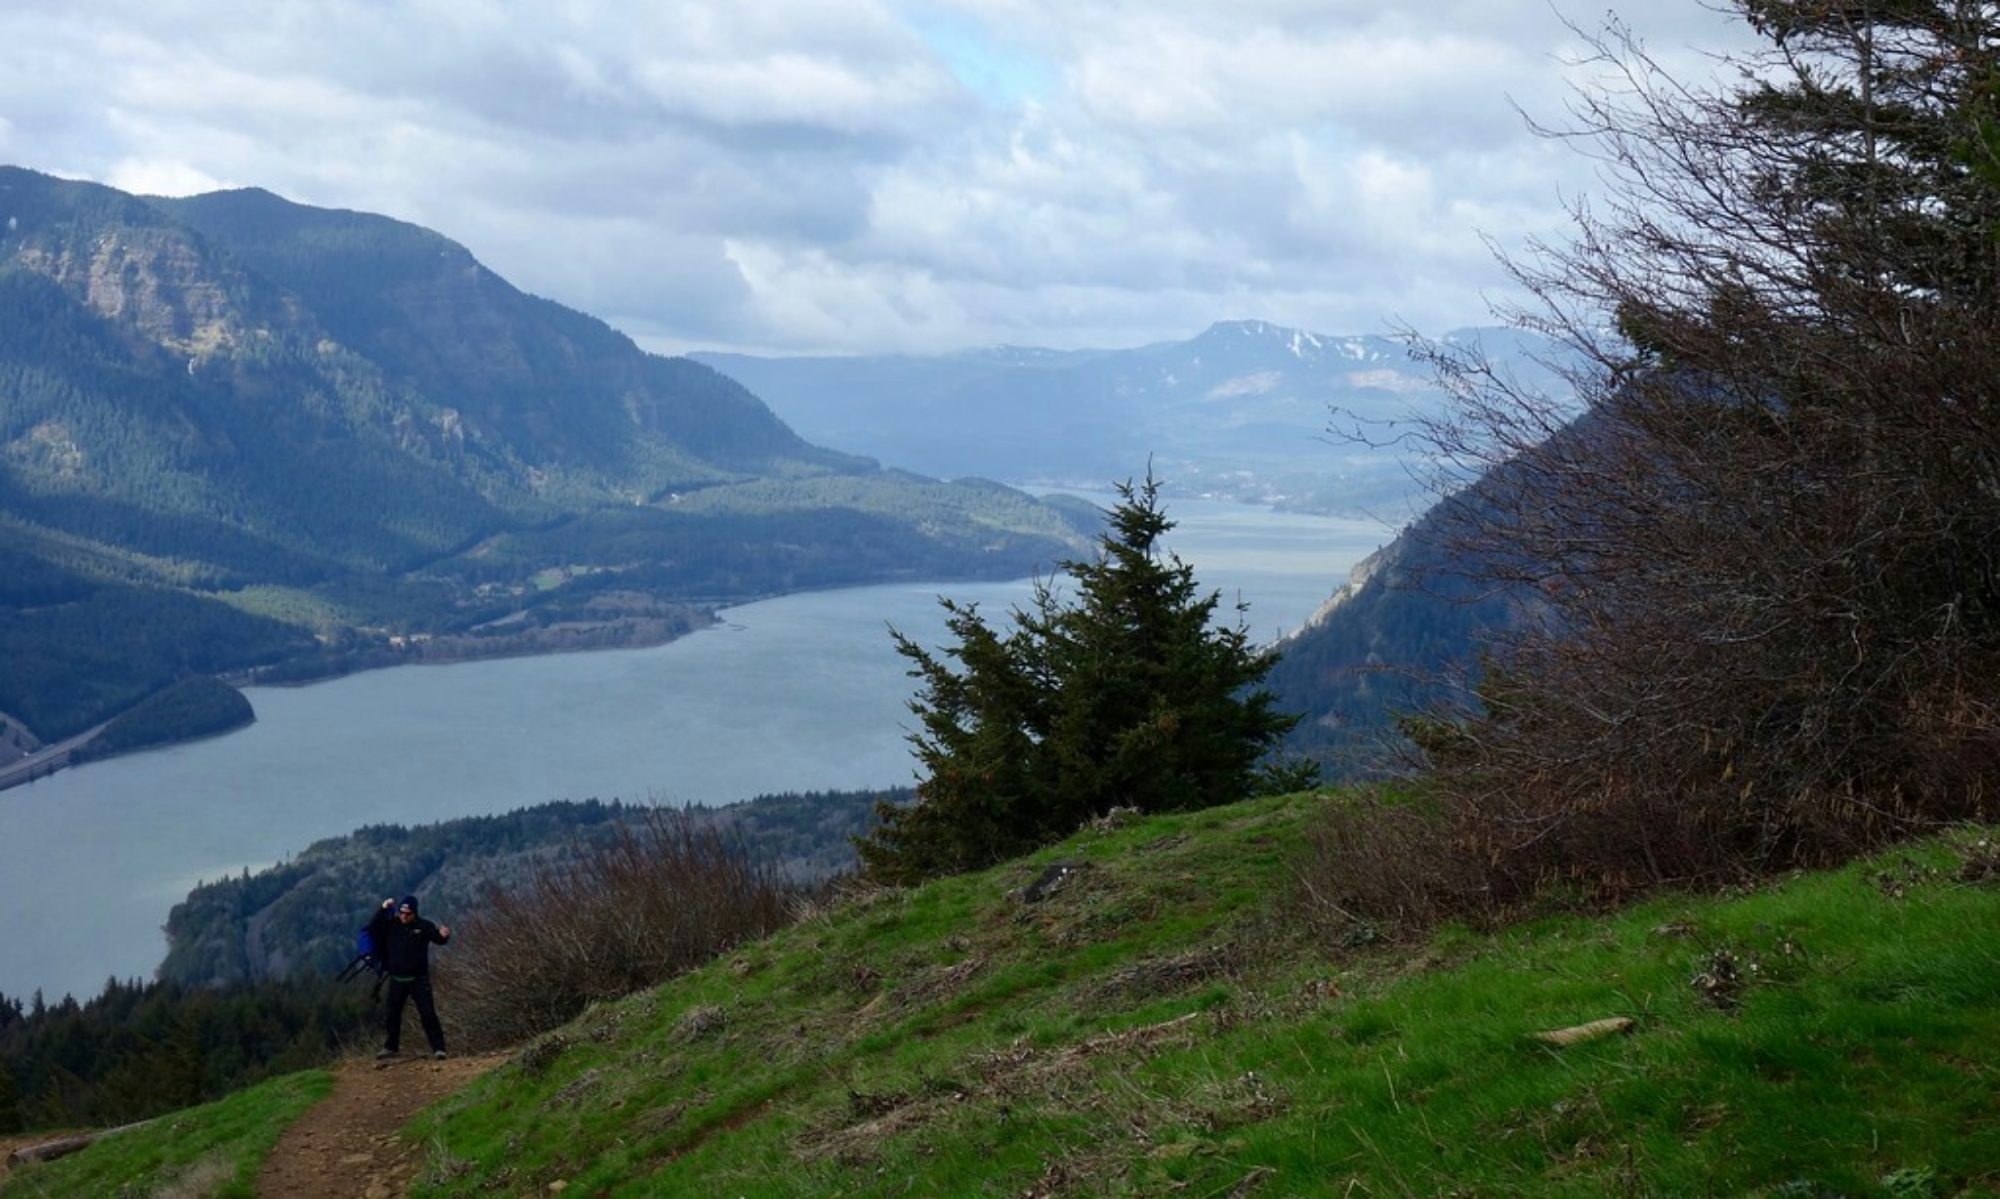 Columbia Gorge Running Club